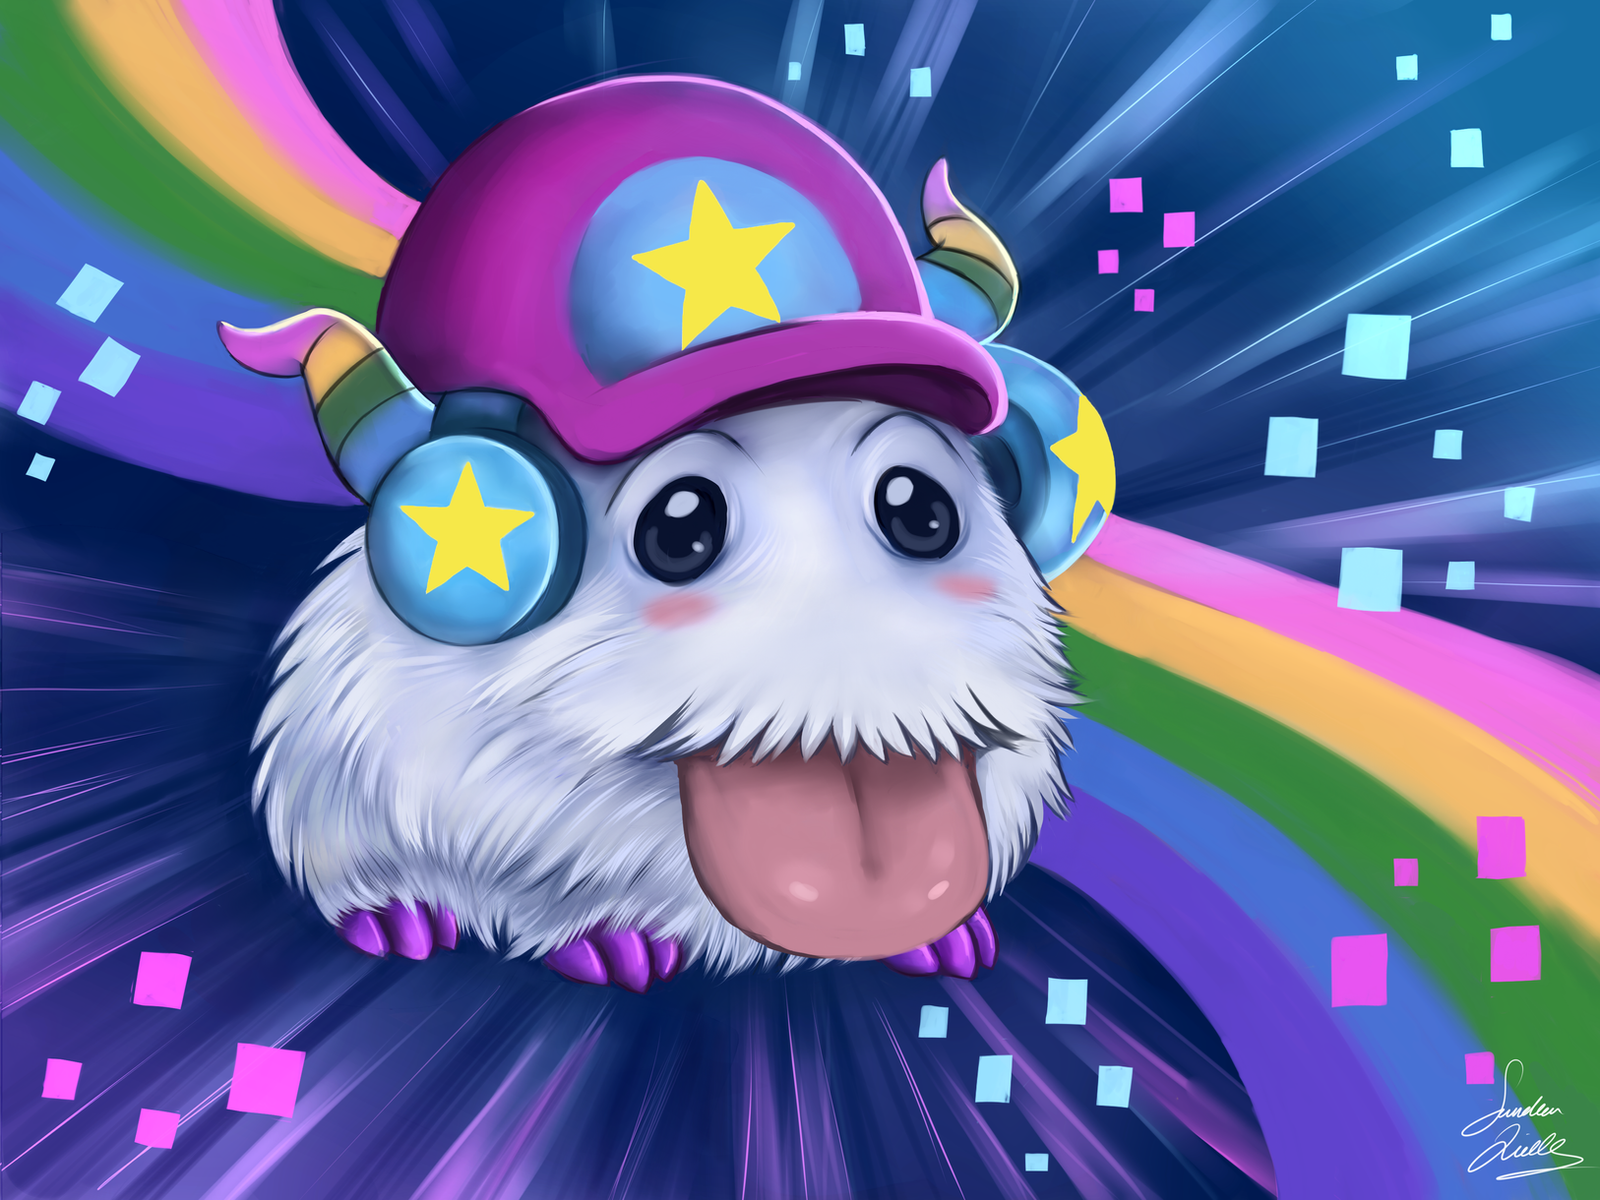 league of legends Poro arcade by TheMysticWolf on DeviantArt